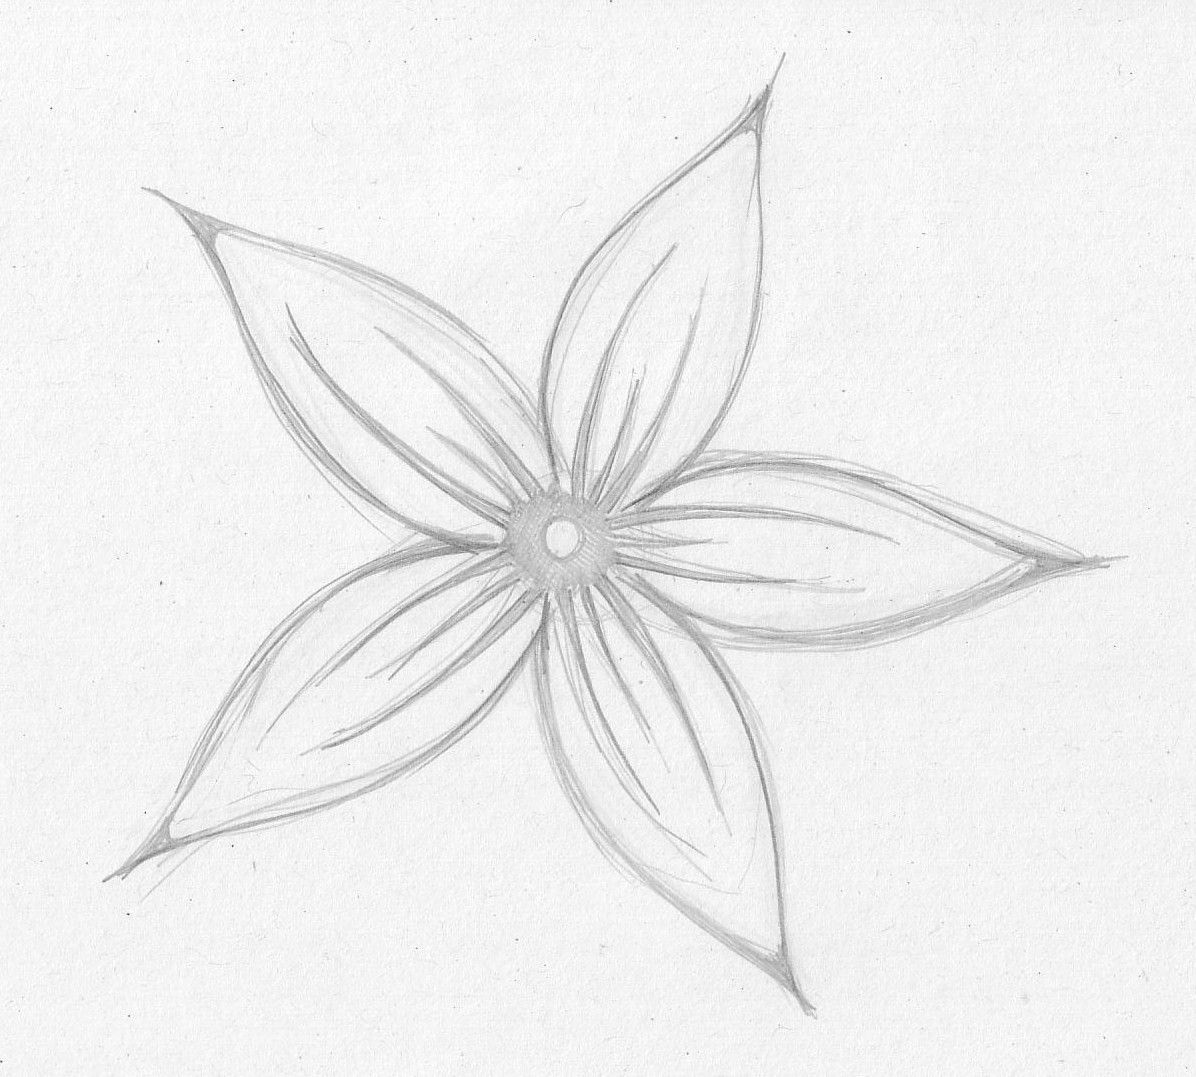 Easy Flower Drawings In Pencil: Daisy Pencil Drawings - Google Search